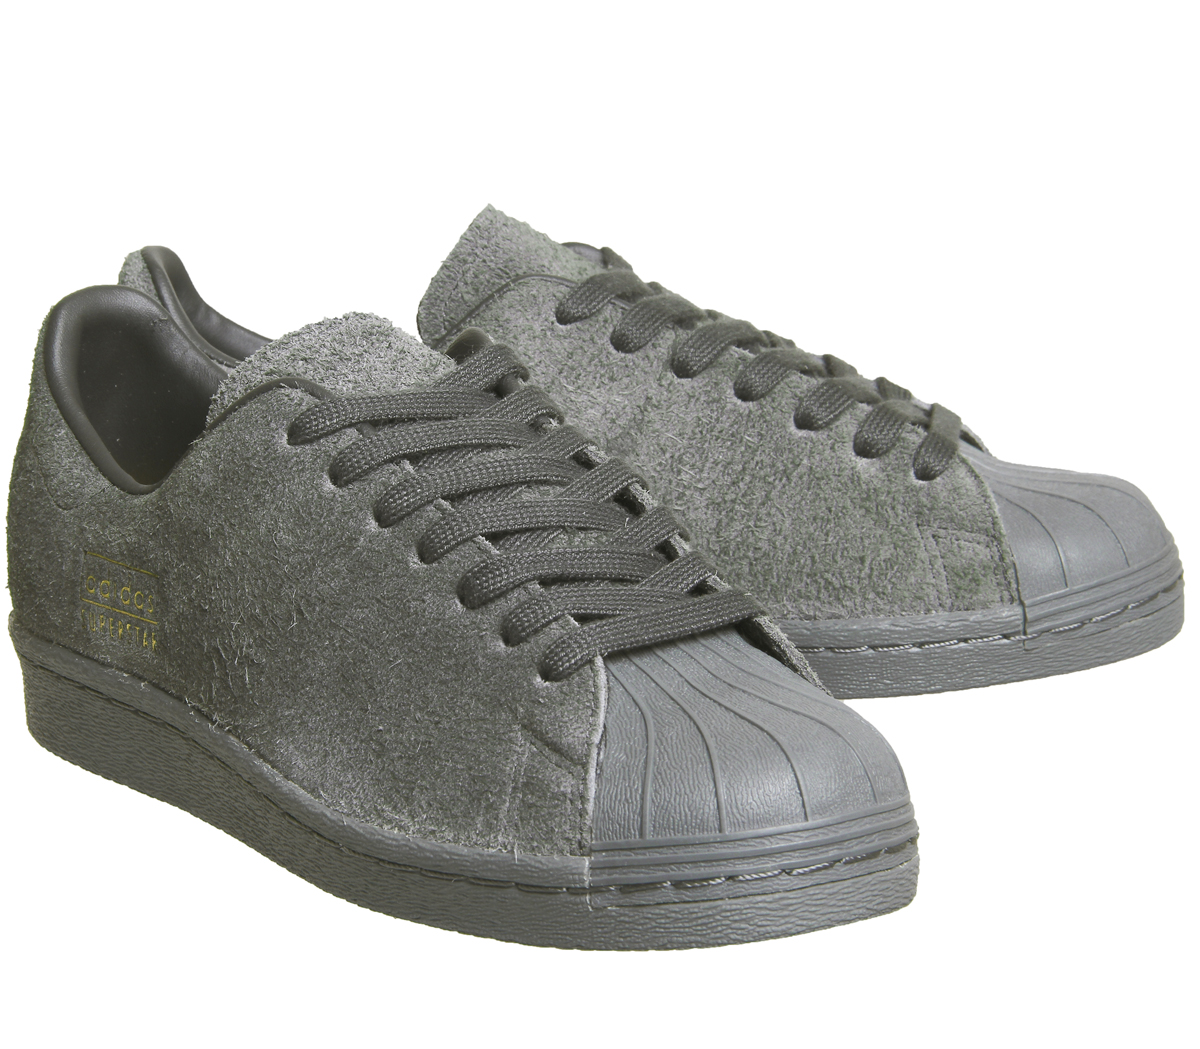 Womens-Adidas-Superstar-80-039-s-Clean-UTILITY-